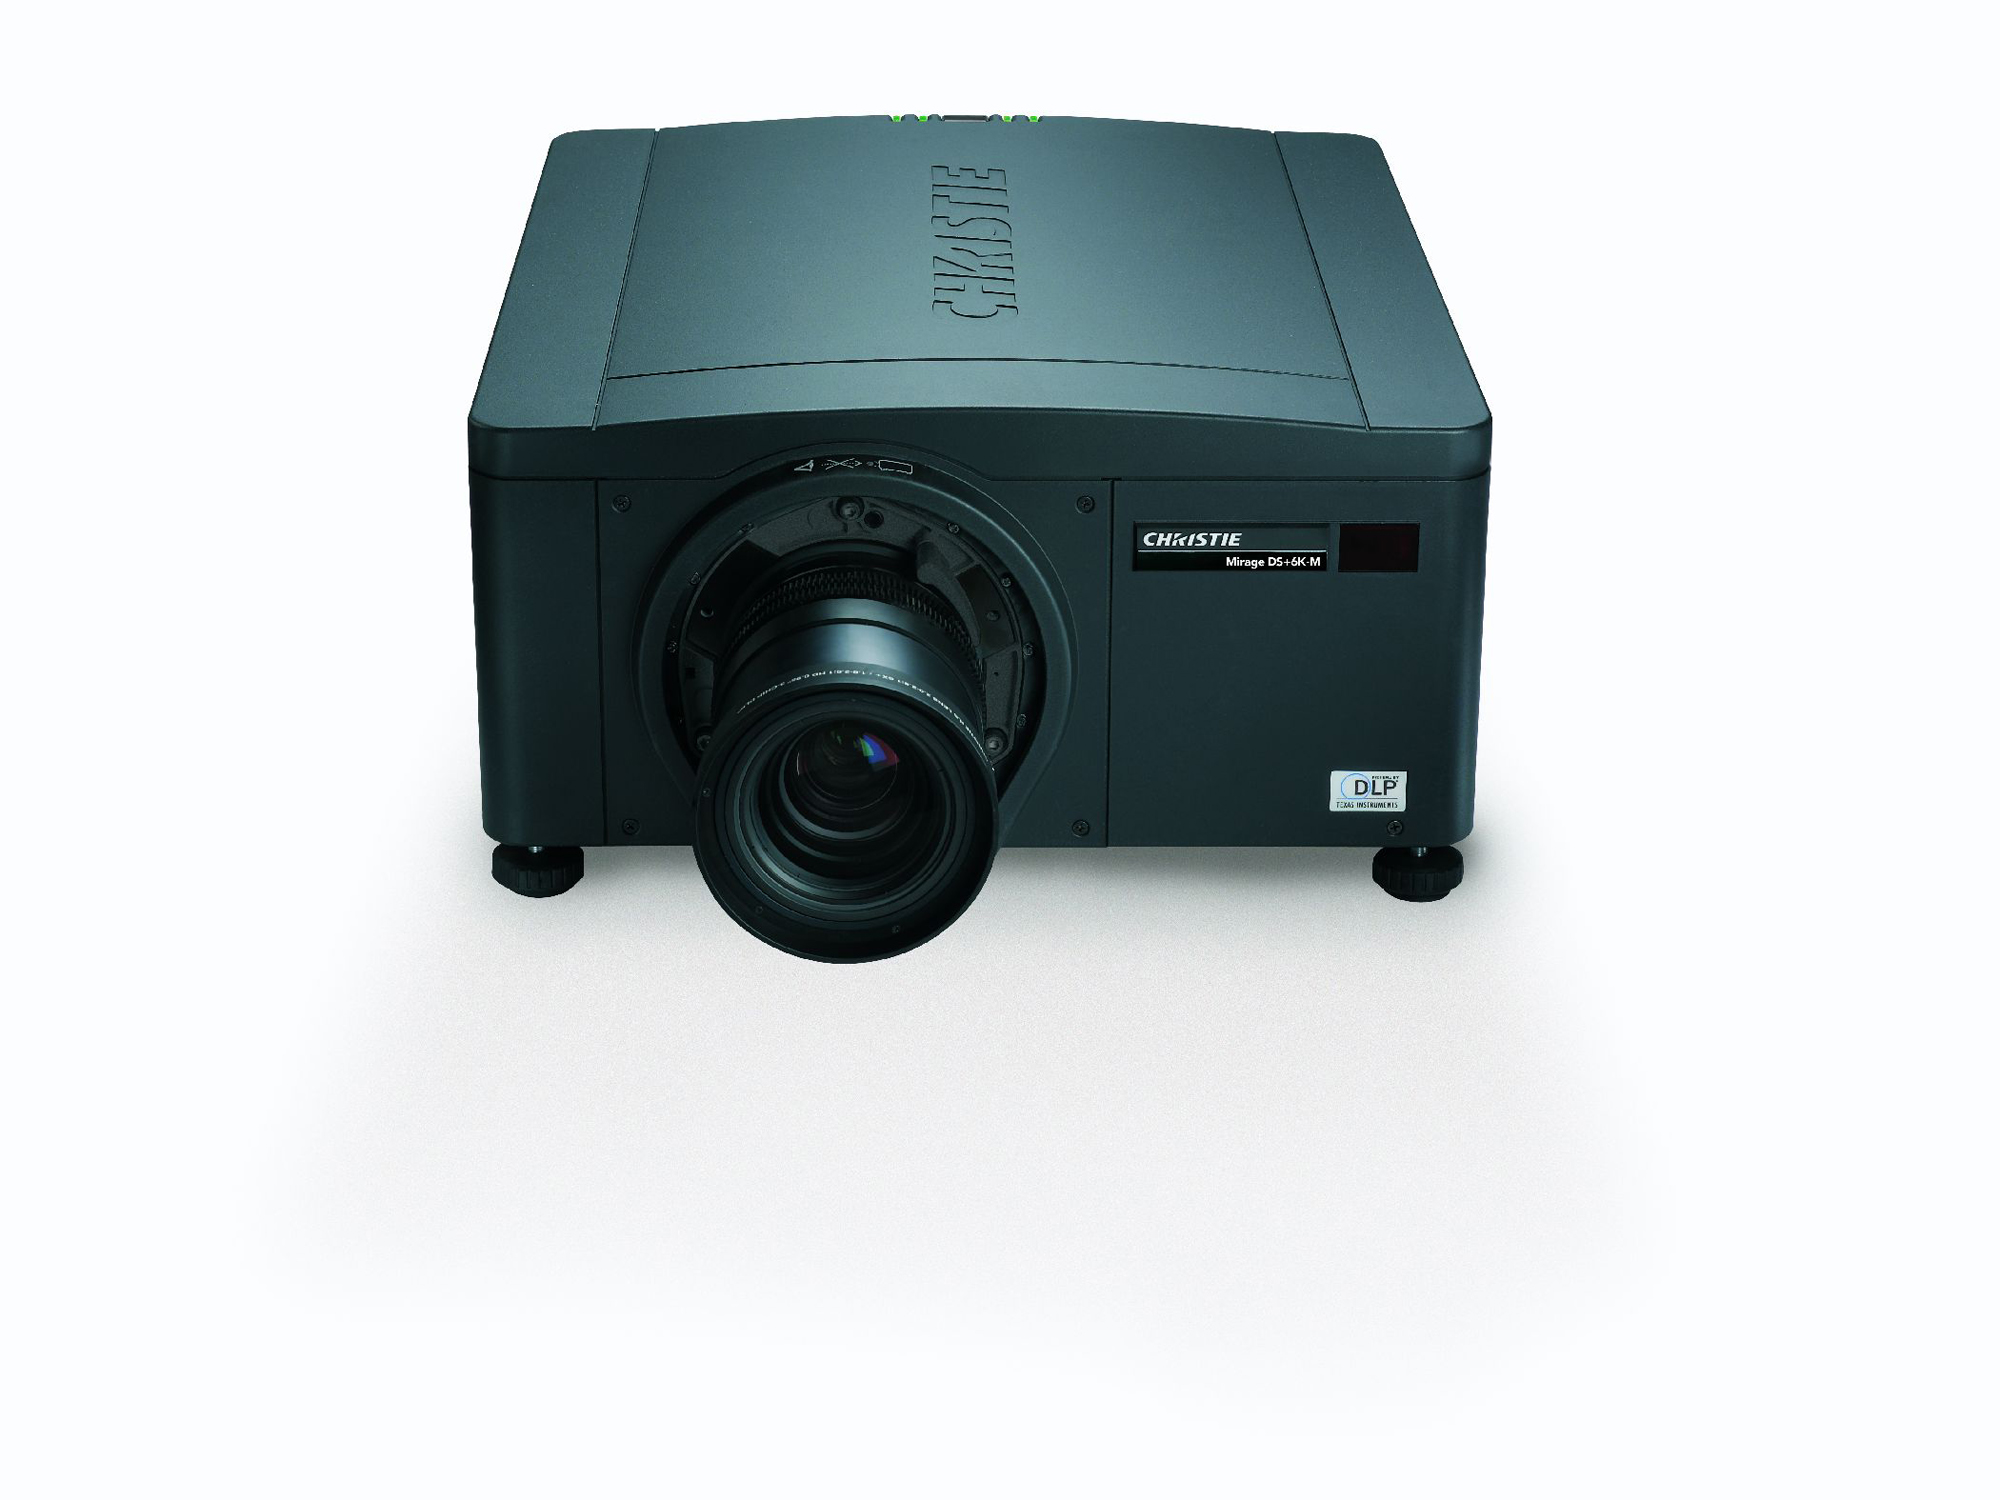 /globalassets/.catalog/products/images/mirage-ds6k-m/gallery/mirage-ds6k-m-digital-projector-highfrontpr.jpg